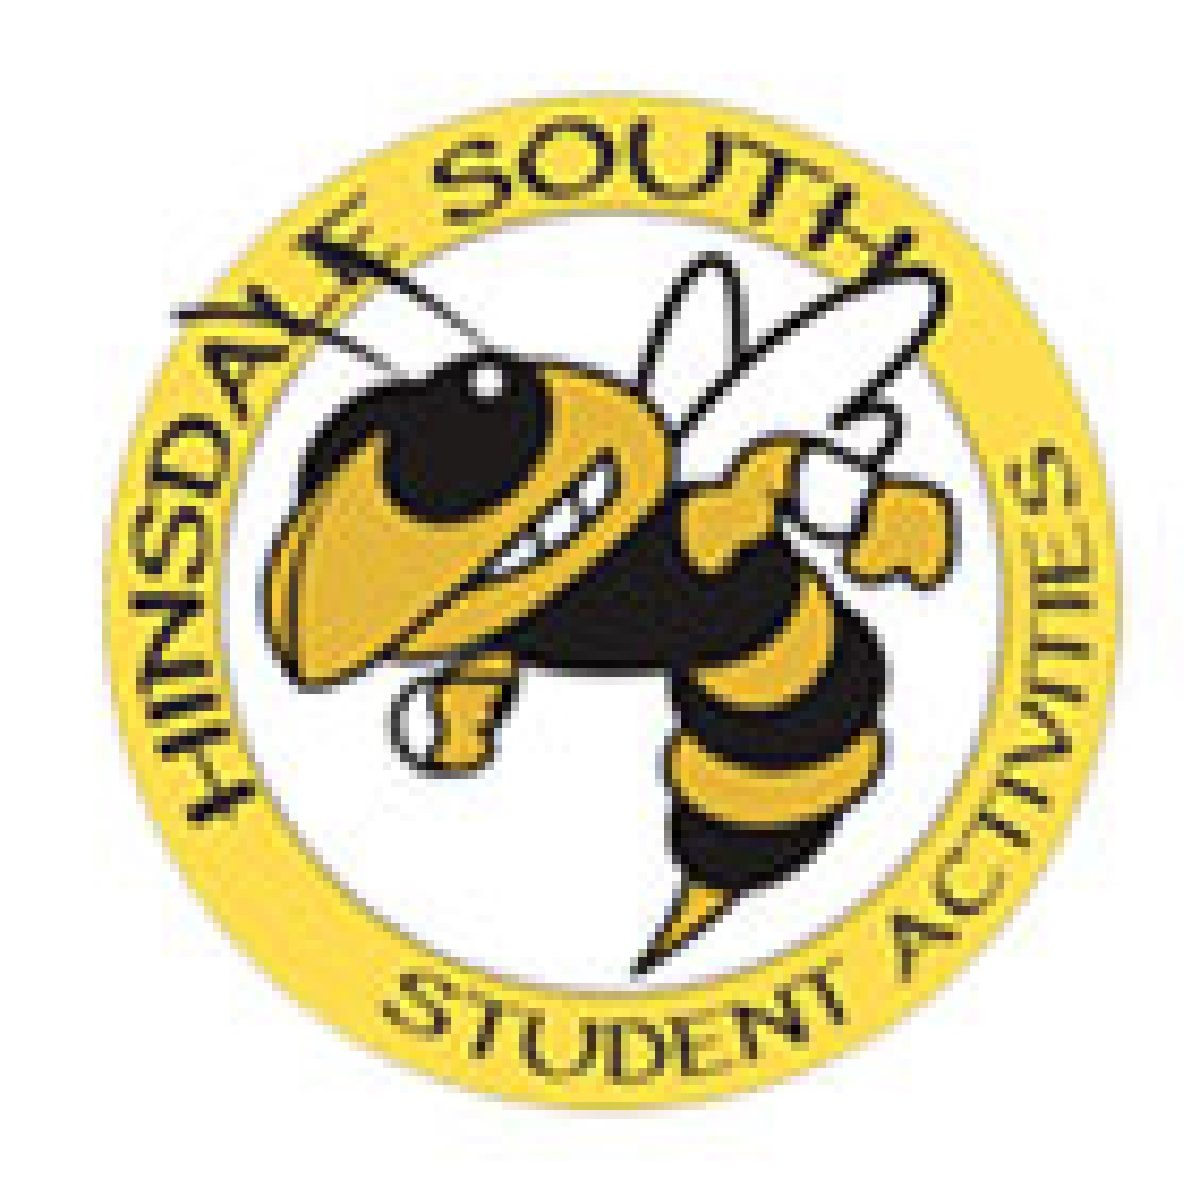 Hillsdale South Logo of a cartoon bee who is black and yellow